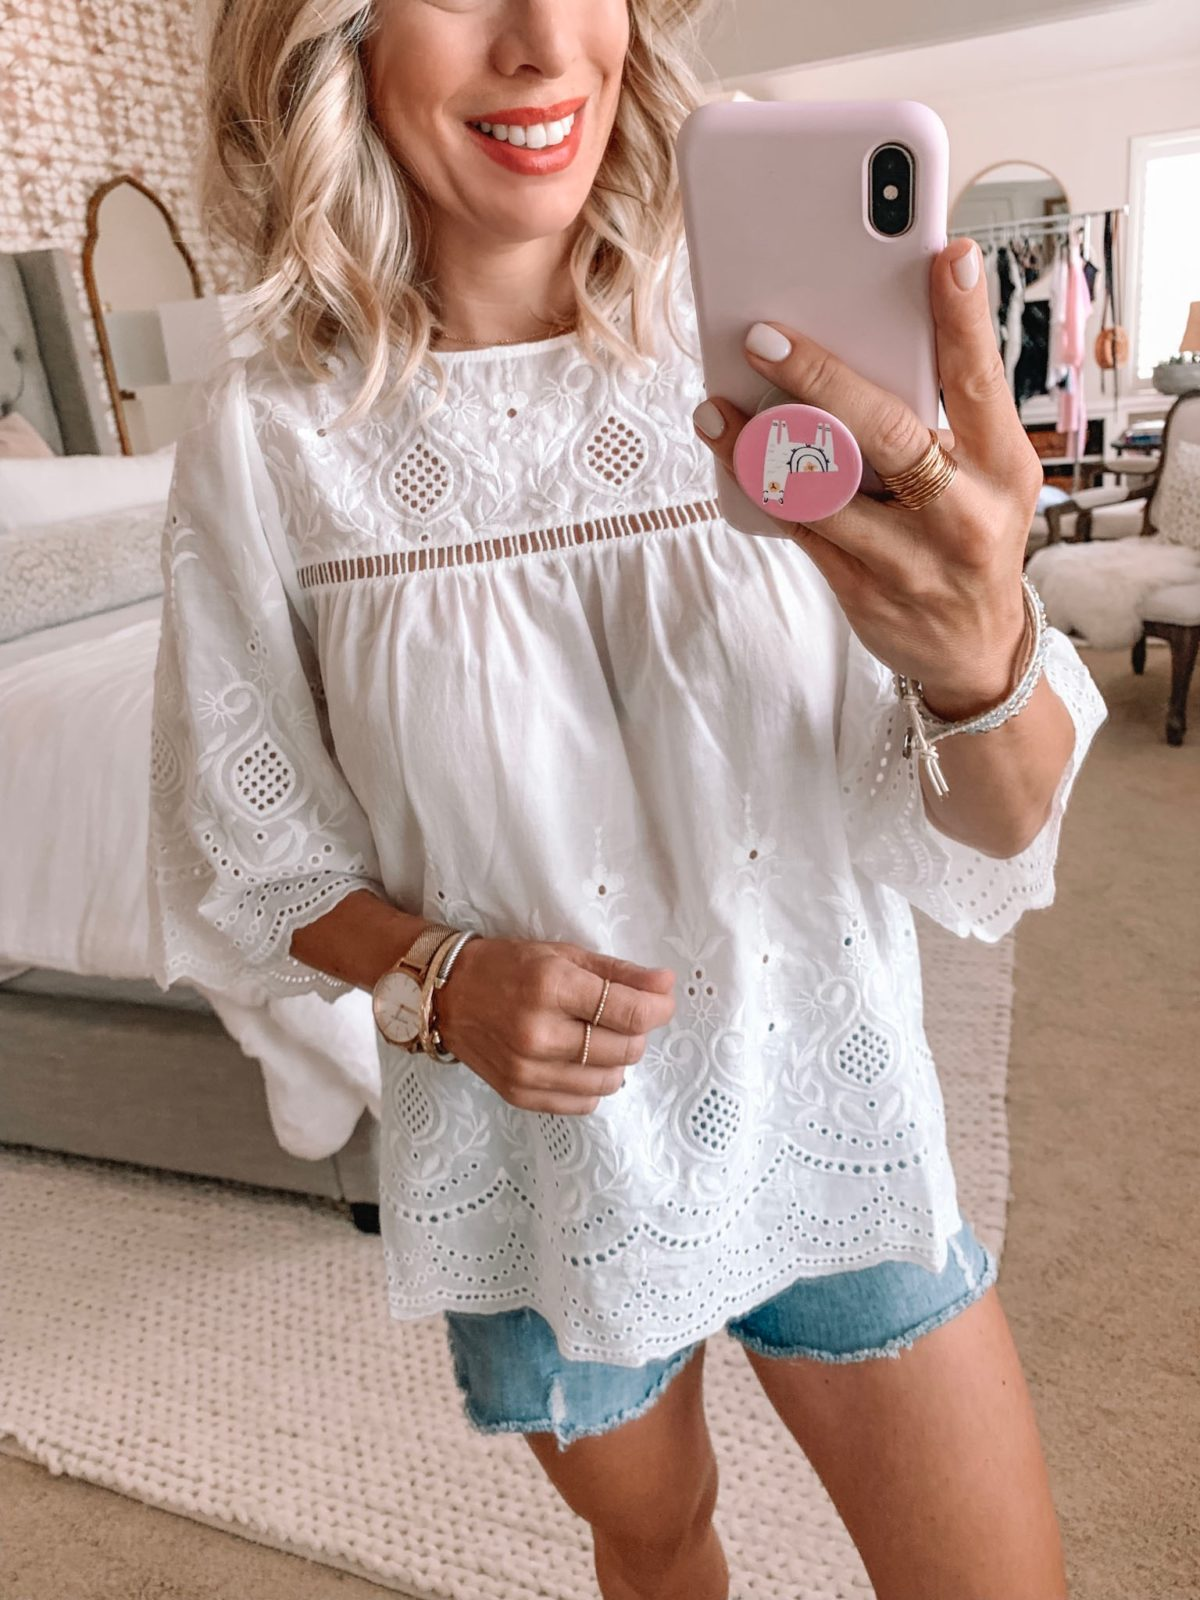 Amazon Fashion Haul - white eyelet top and jean shorts